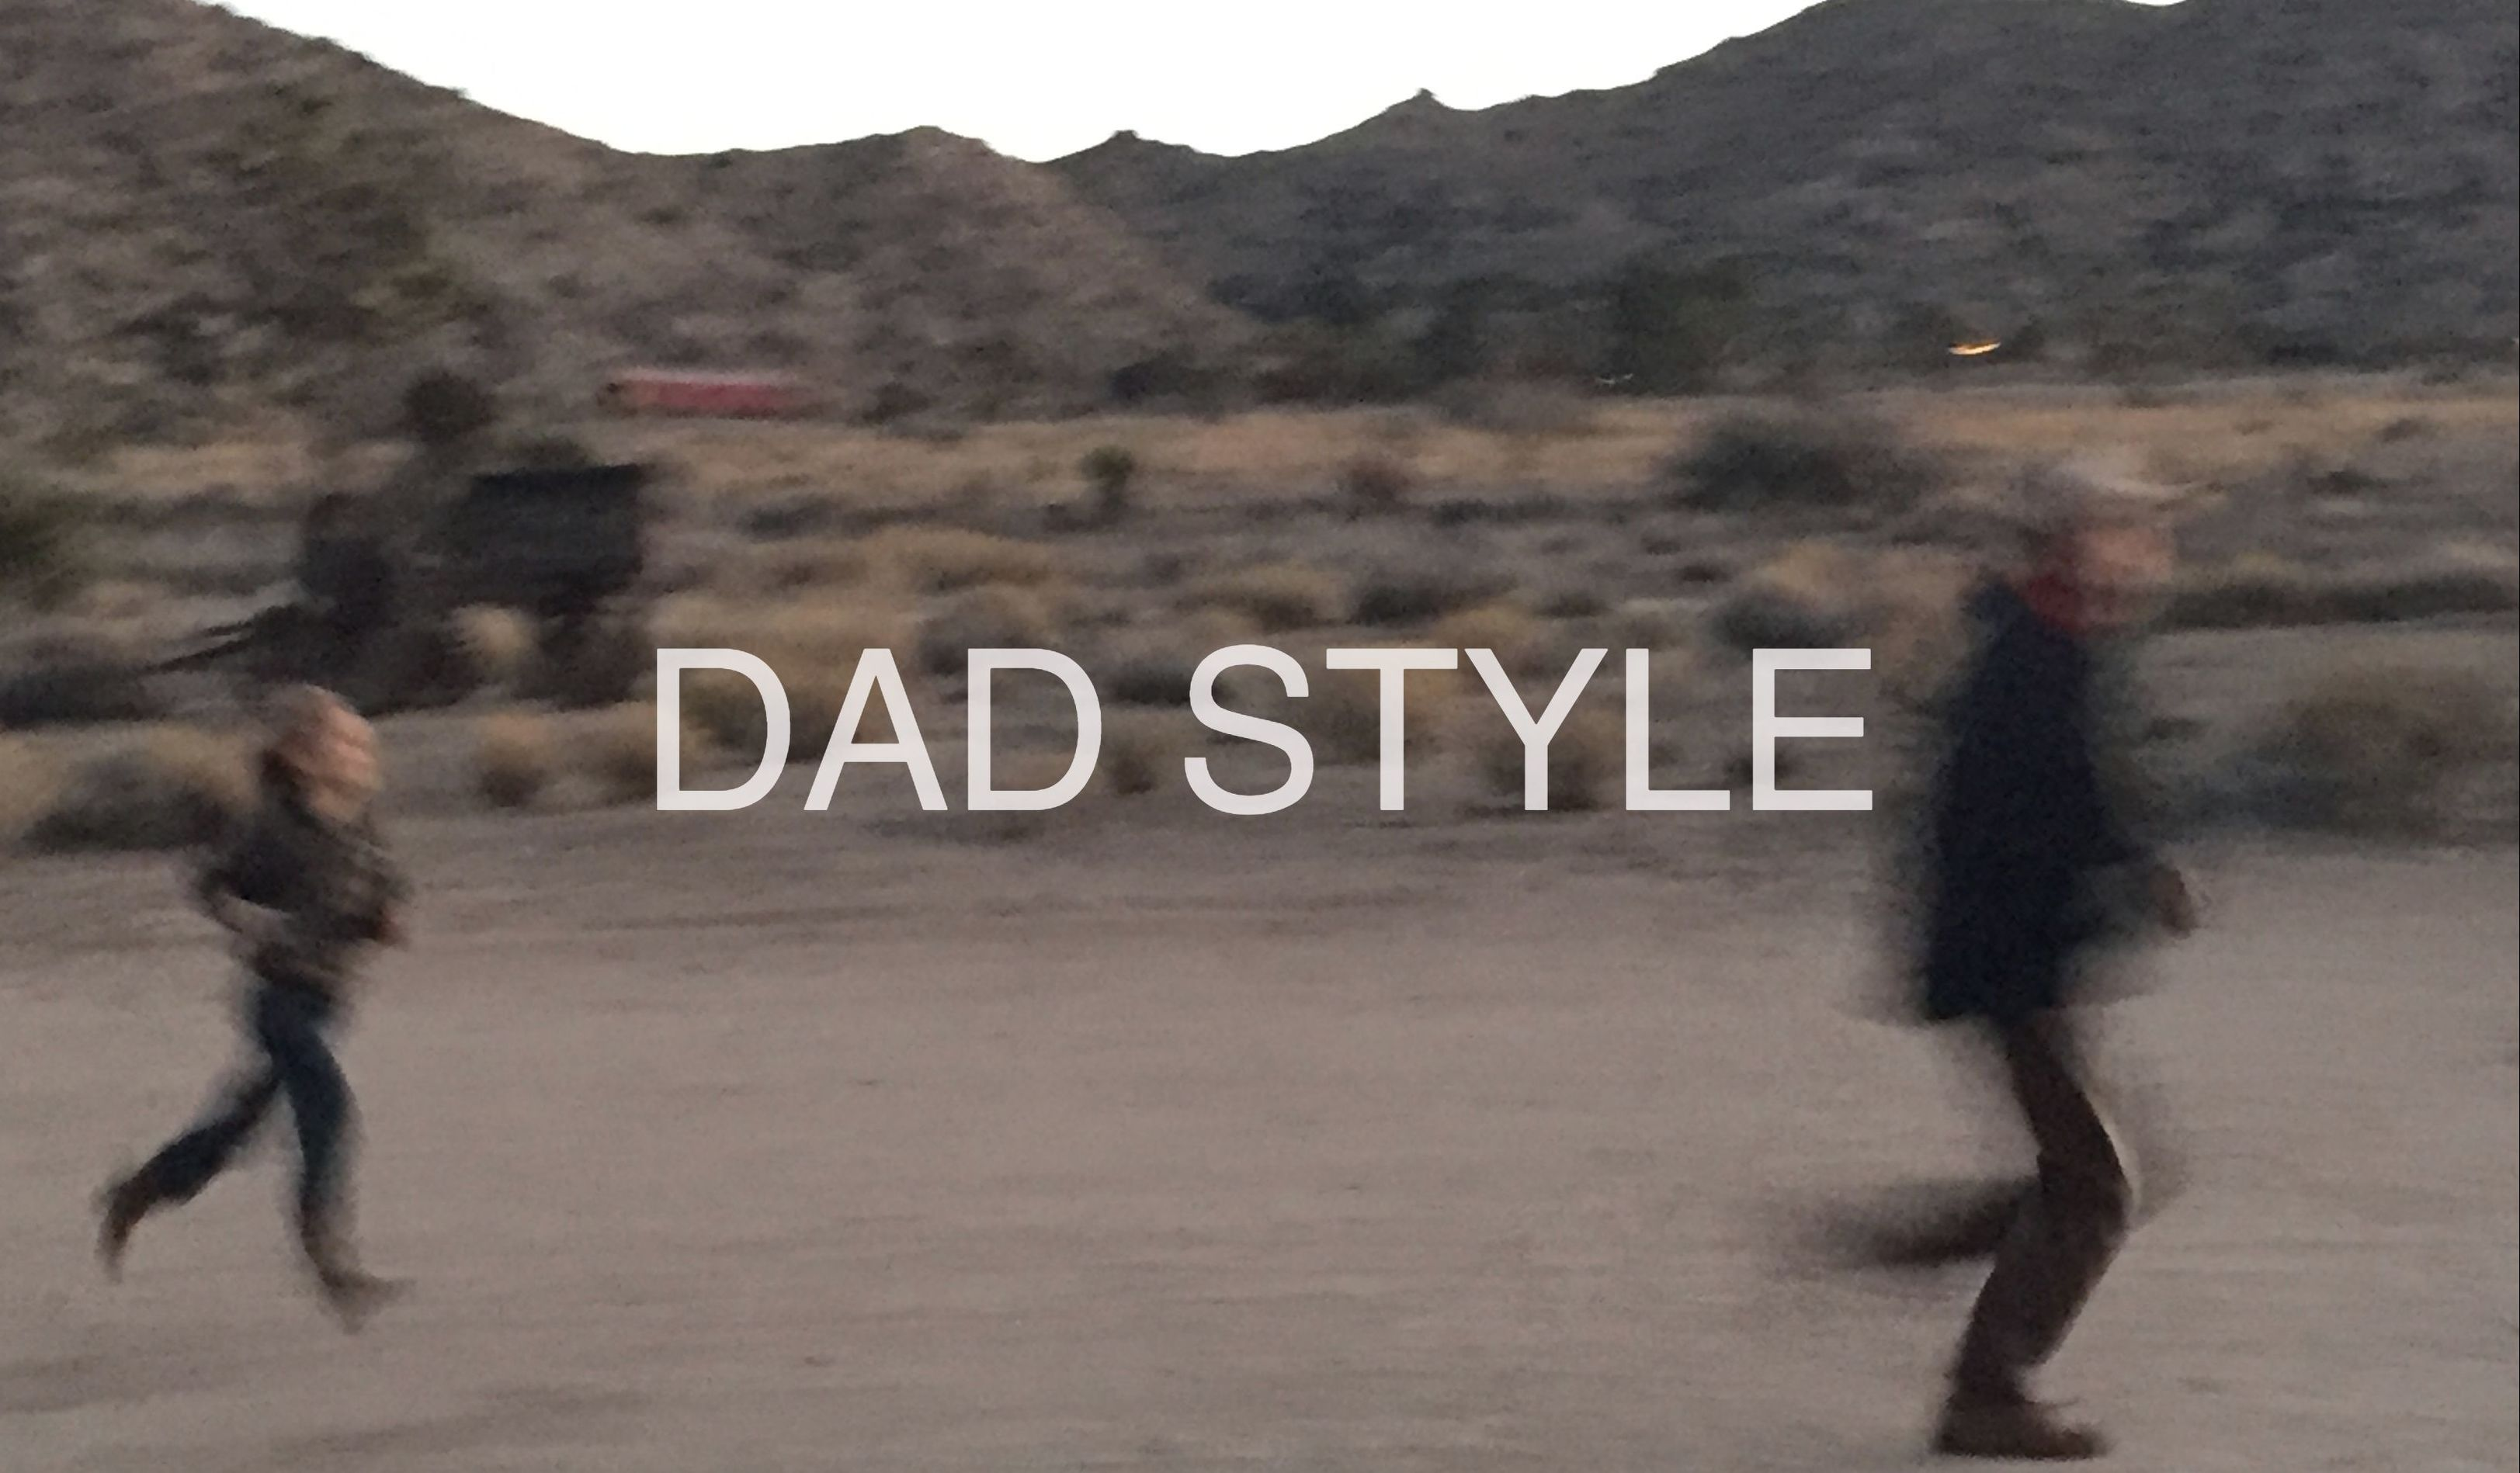 DAD STYLE - UNDER $50